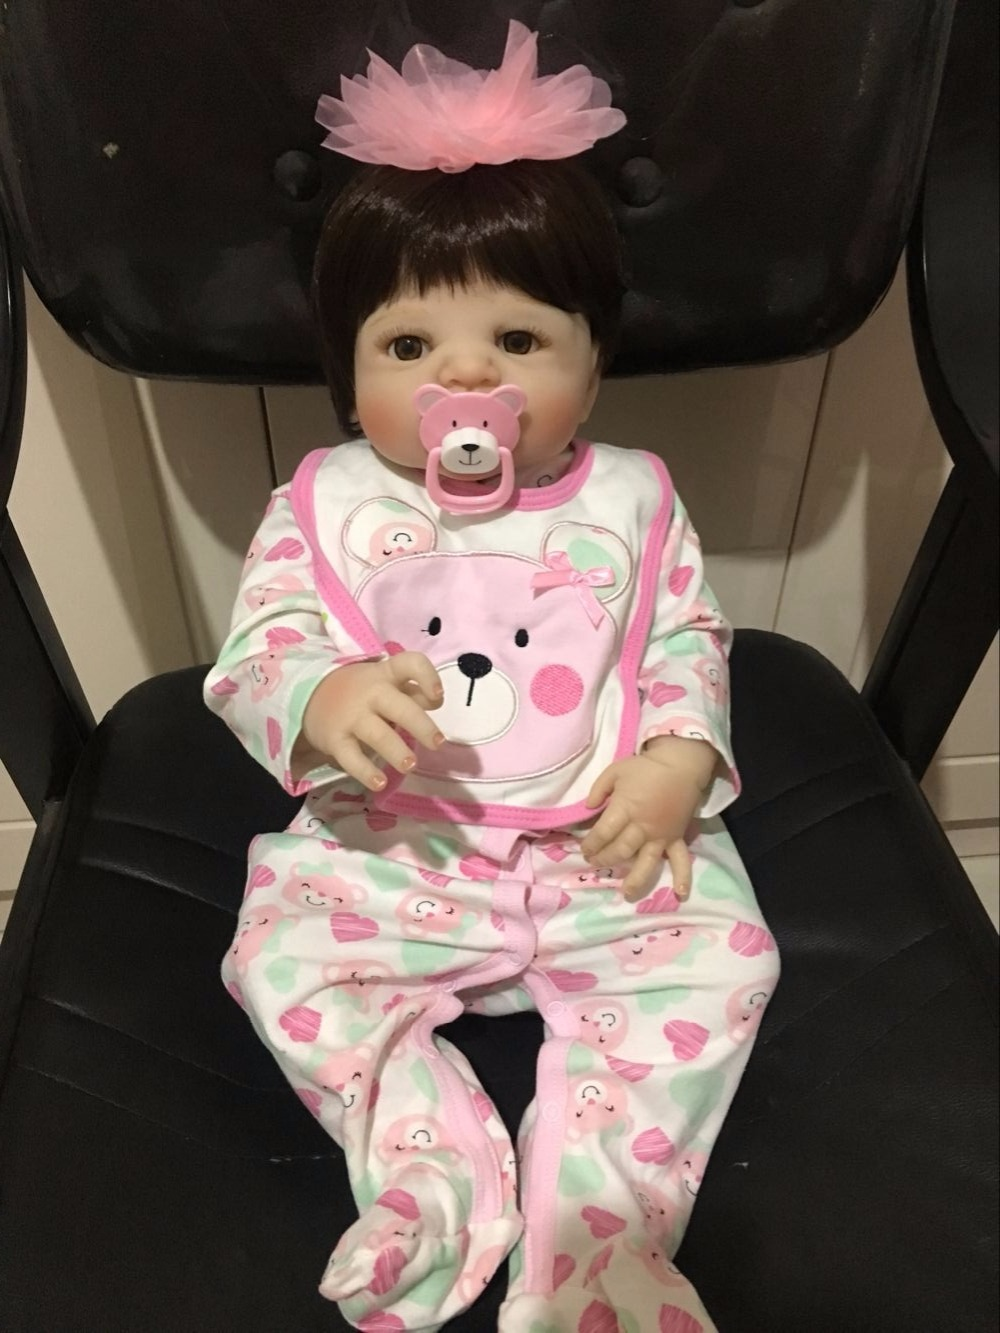 55cm Full Silicone Body Reborn Baby Doll Toy Newborn Princess Toddler Babies Doll Girl Brinquedos Bathe Toy Play House Toy 55cm full silicone reborn baby doll toy real touch newborn princess toddler babies alive bebe doll with pacifier girl bonecas